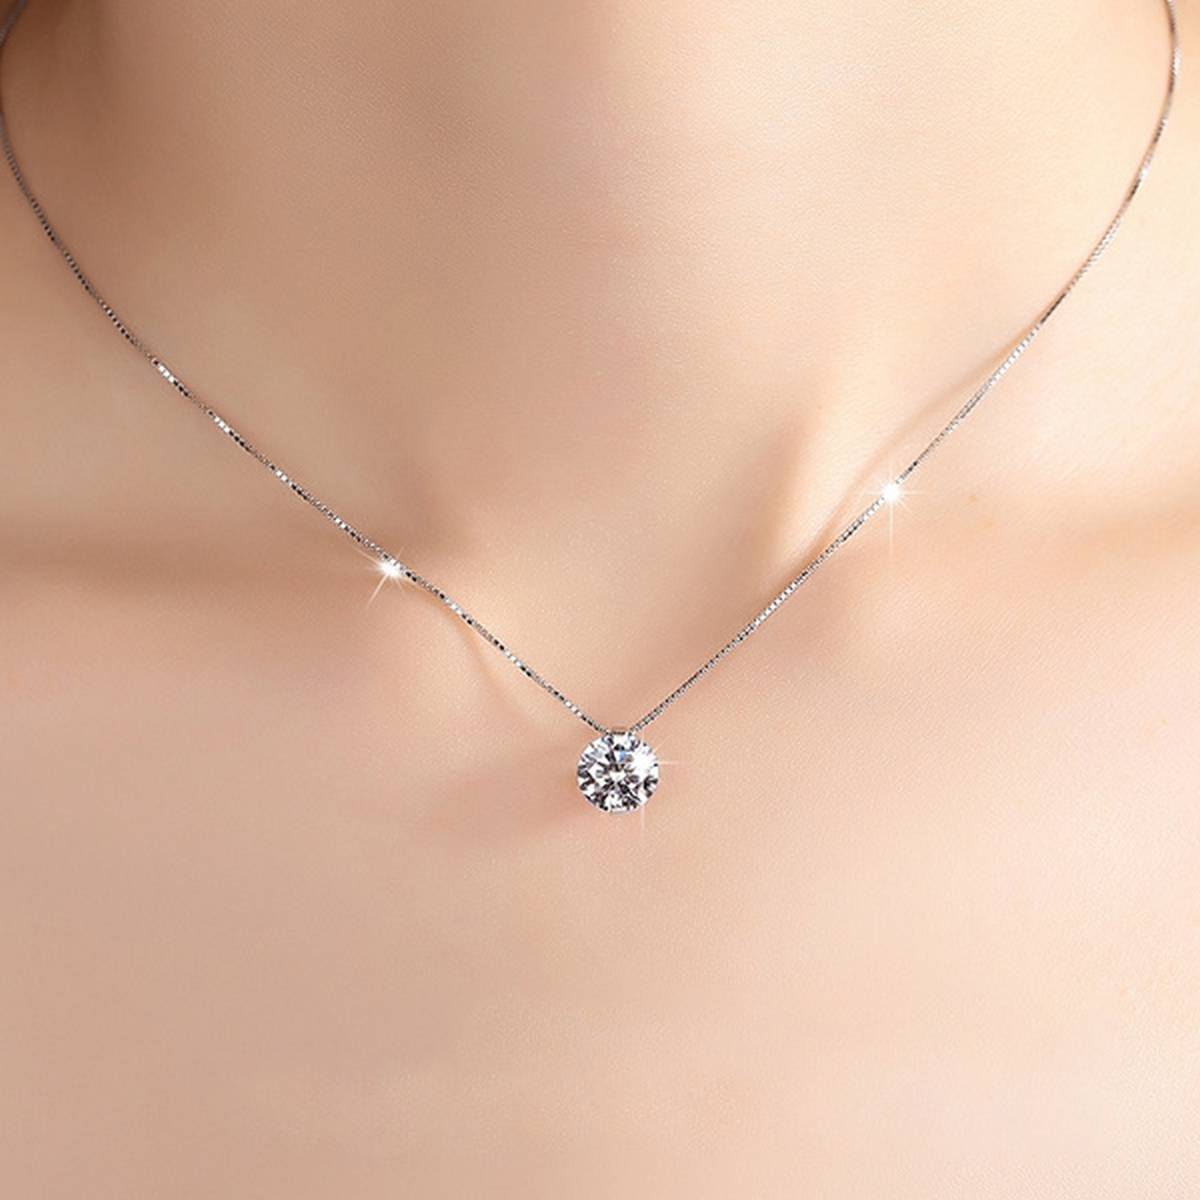 Pendants with chain for girls